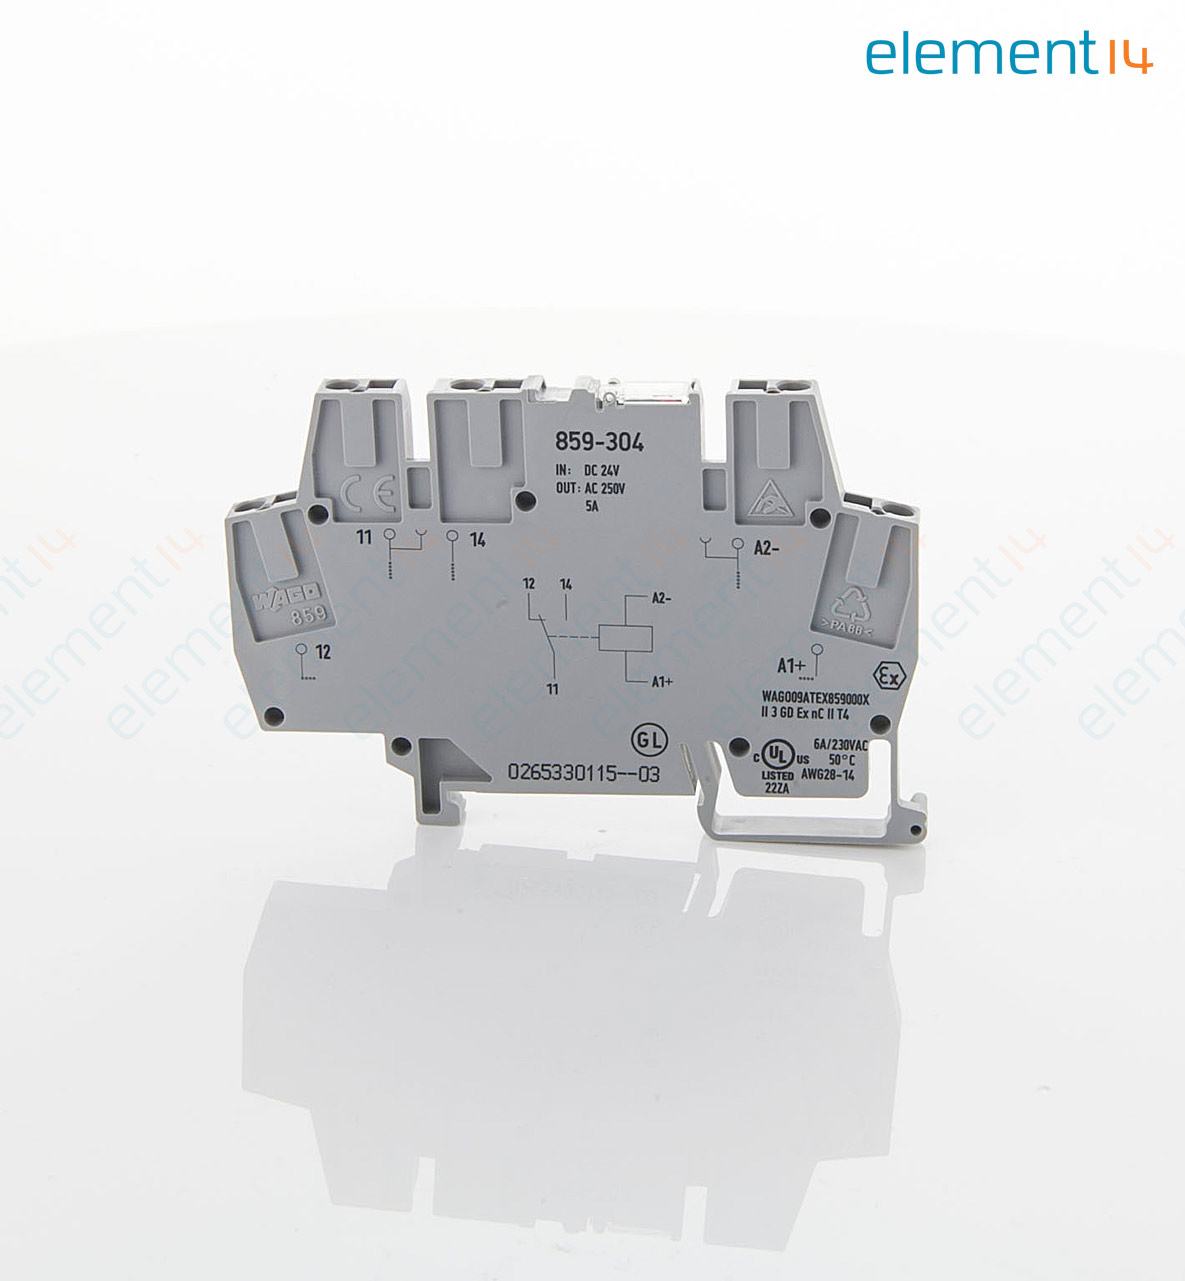 859 304 Wago Din Rail Mount Terminal Block With Switching Relay 5 Switch Hs Code Add To Compare